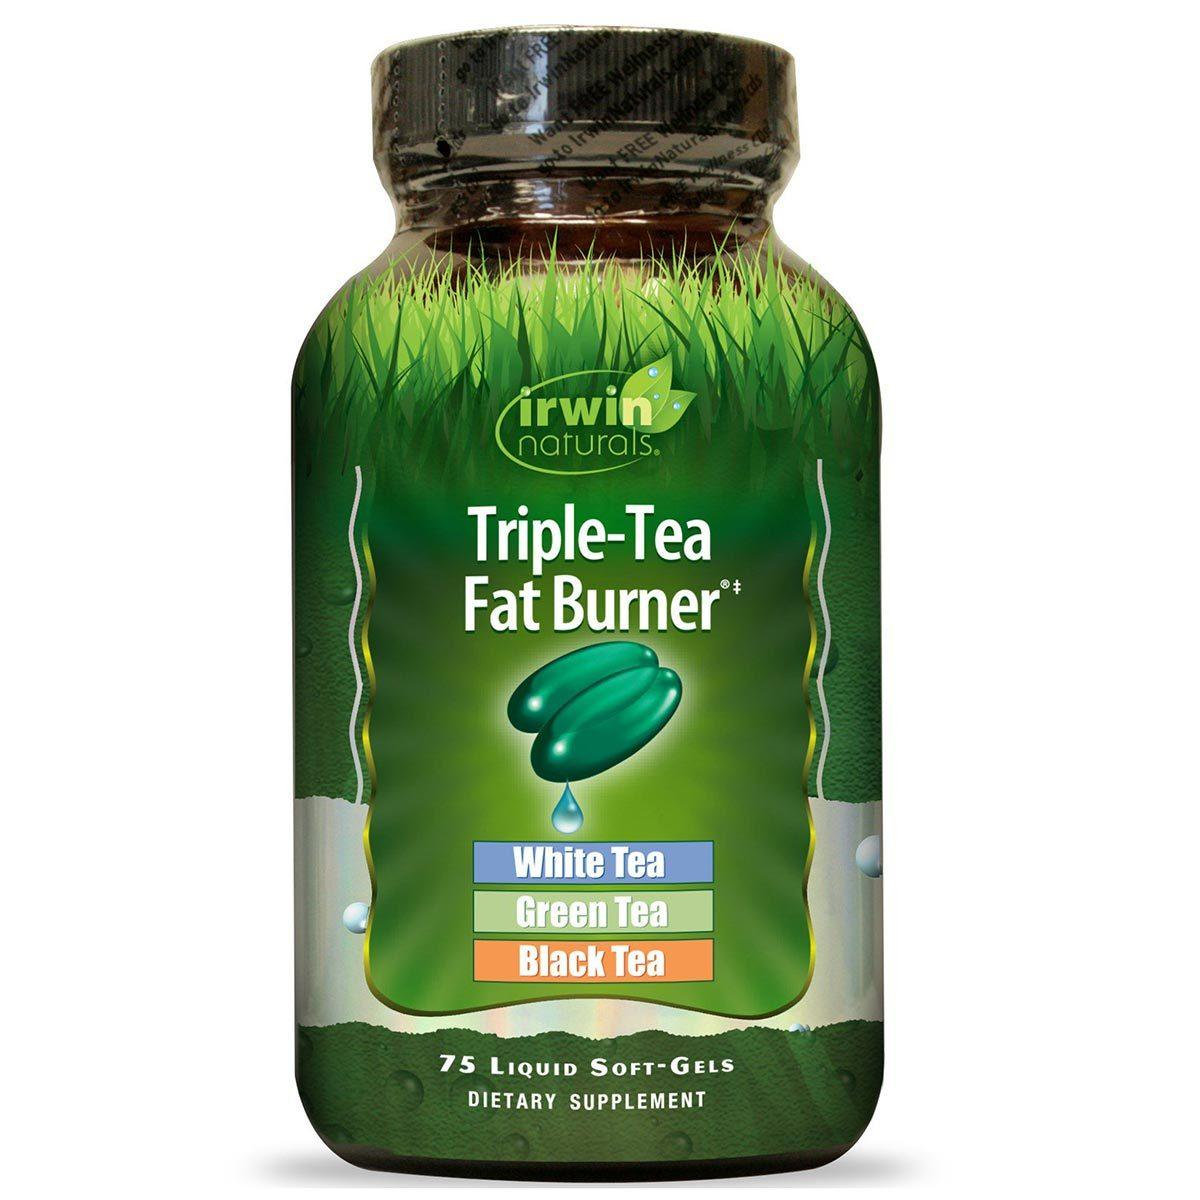 Irwin Naturals Triple-Tea Fat Burner 75 Liquid Soft Gels Diet/Energy Irwin Naturals  (1058861350955)